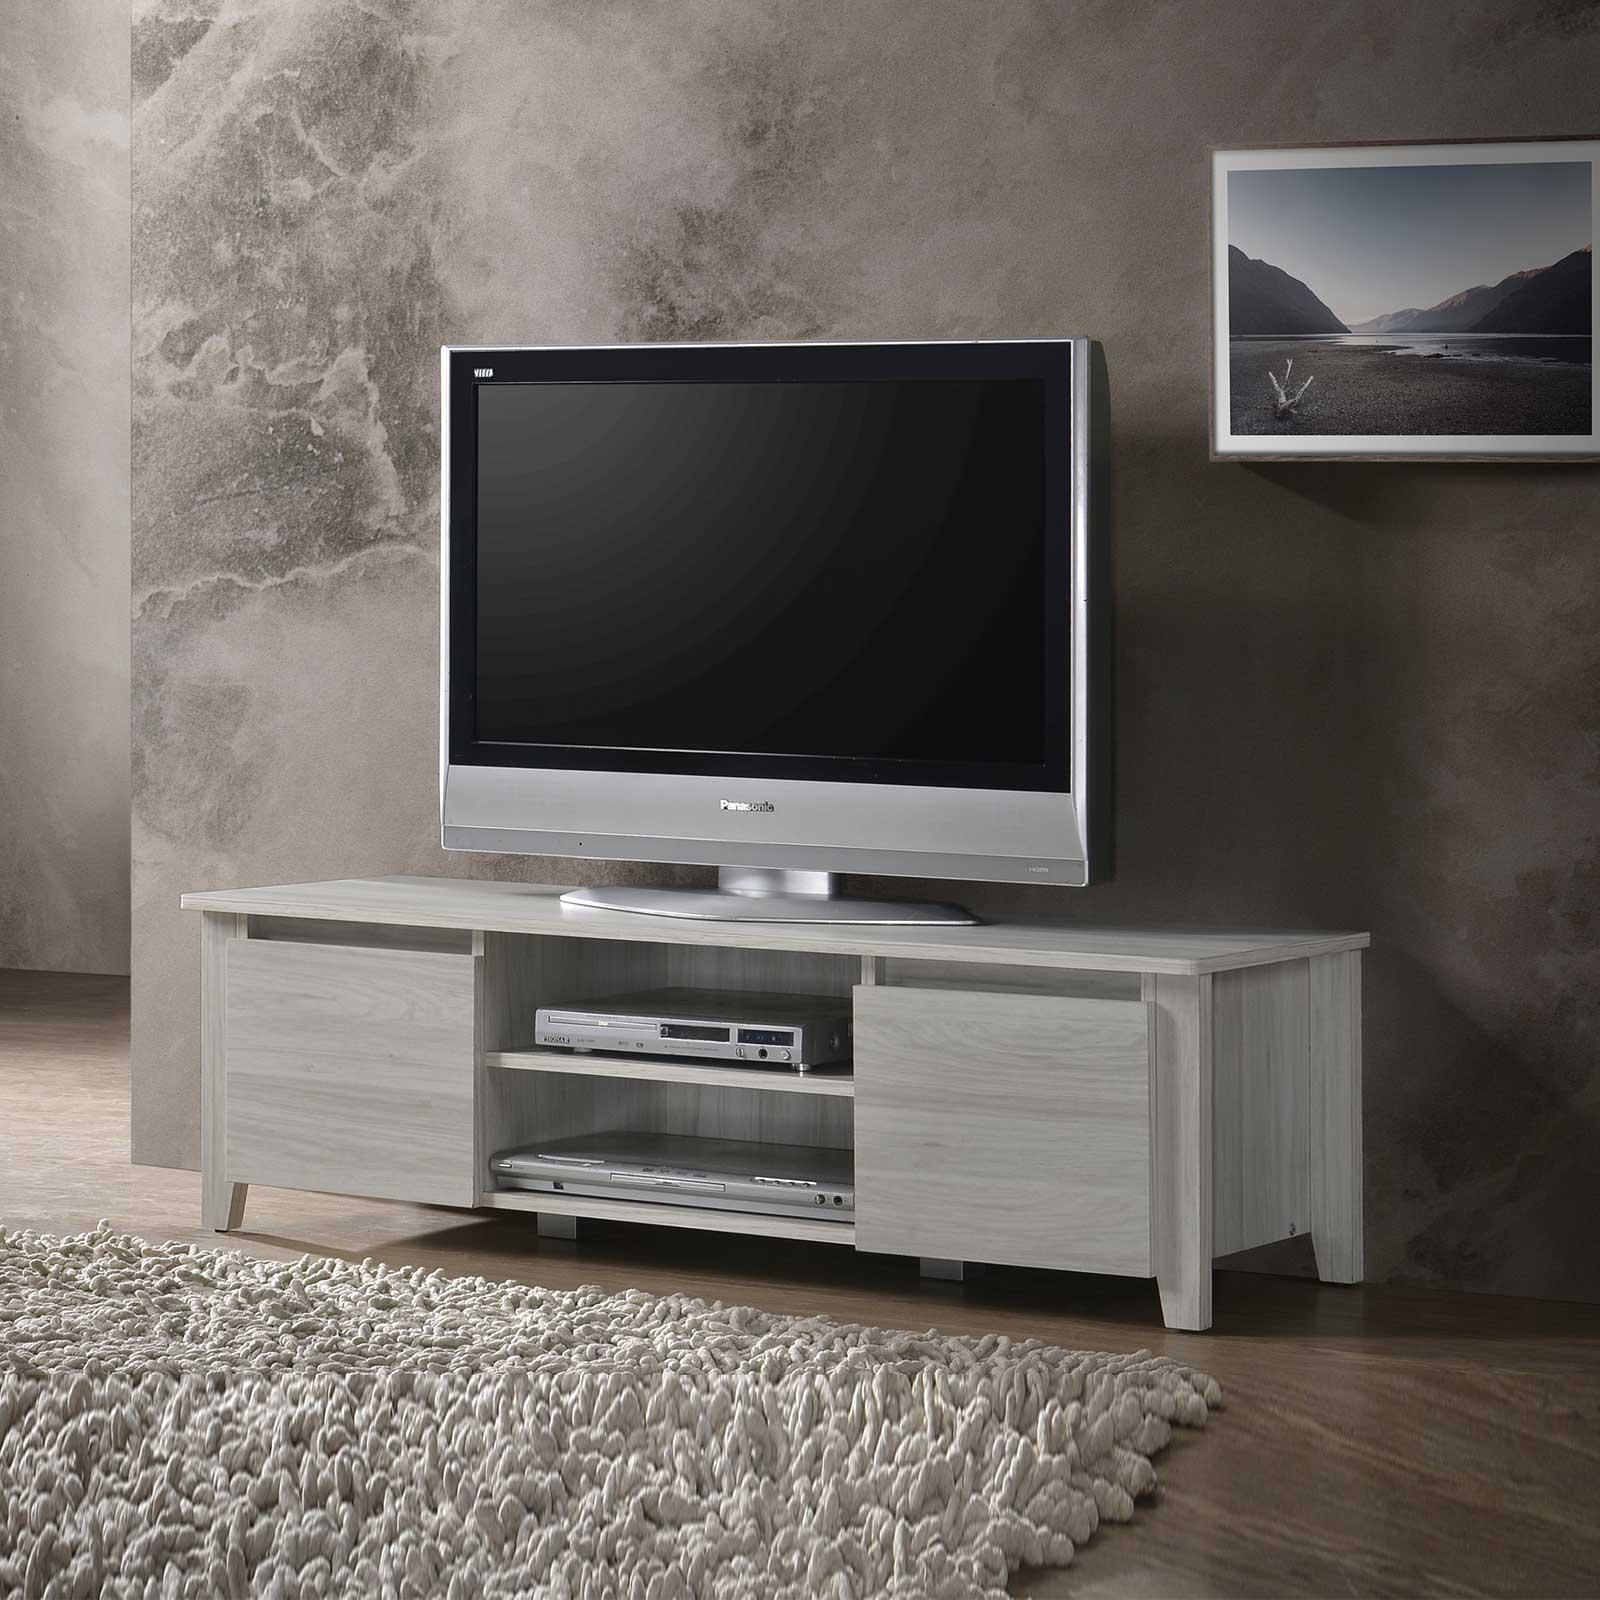 TV Console - 4ft / 1.2m in White Oak Cabinet Shelves Stand Entertainment Unit⭐E-LIVING Furniture